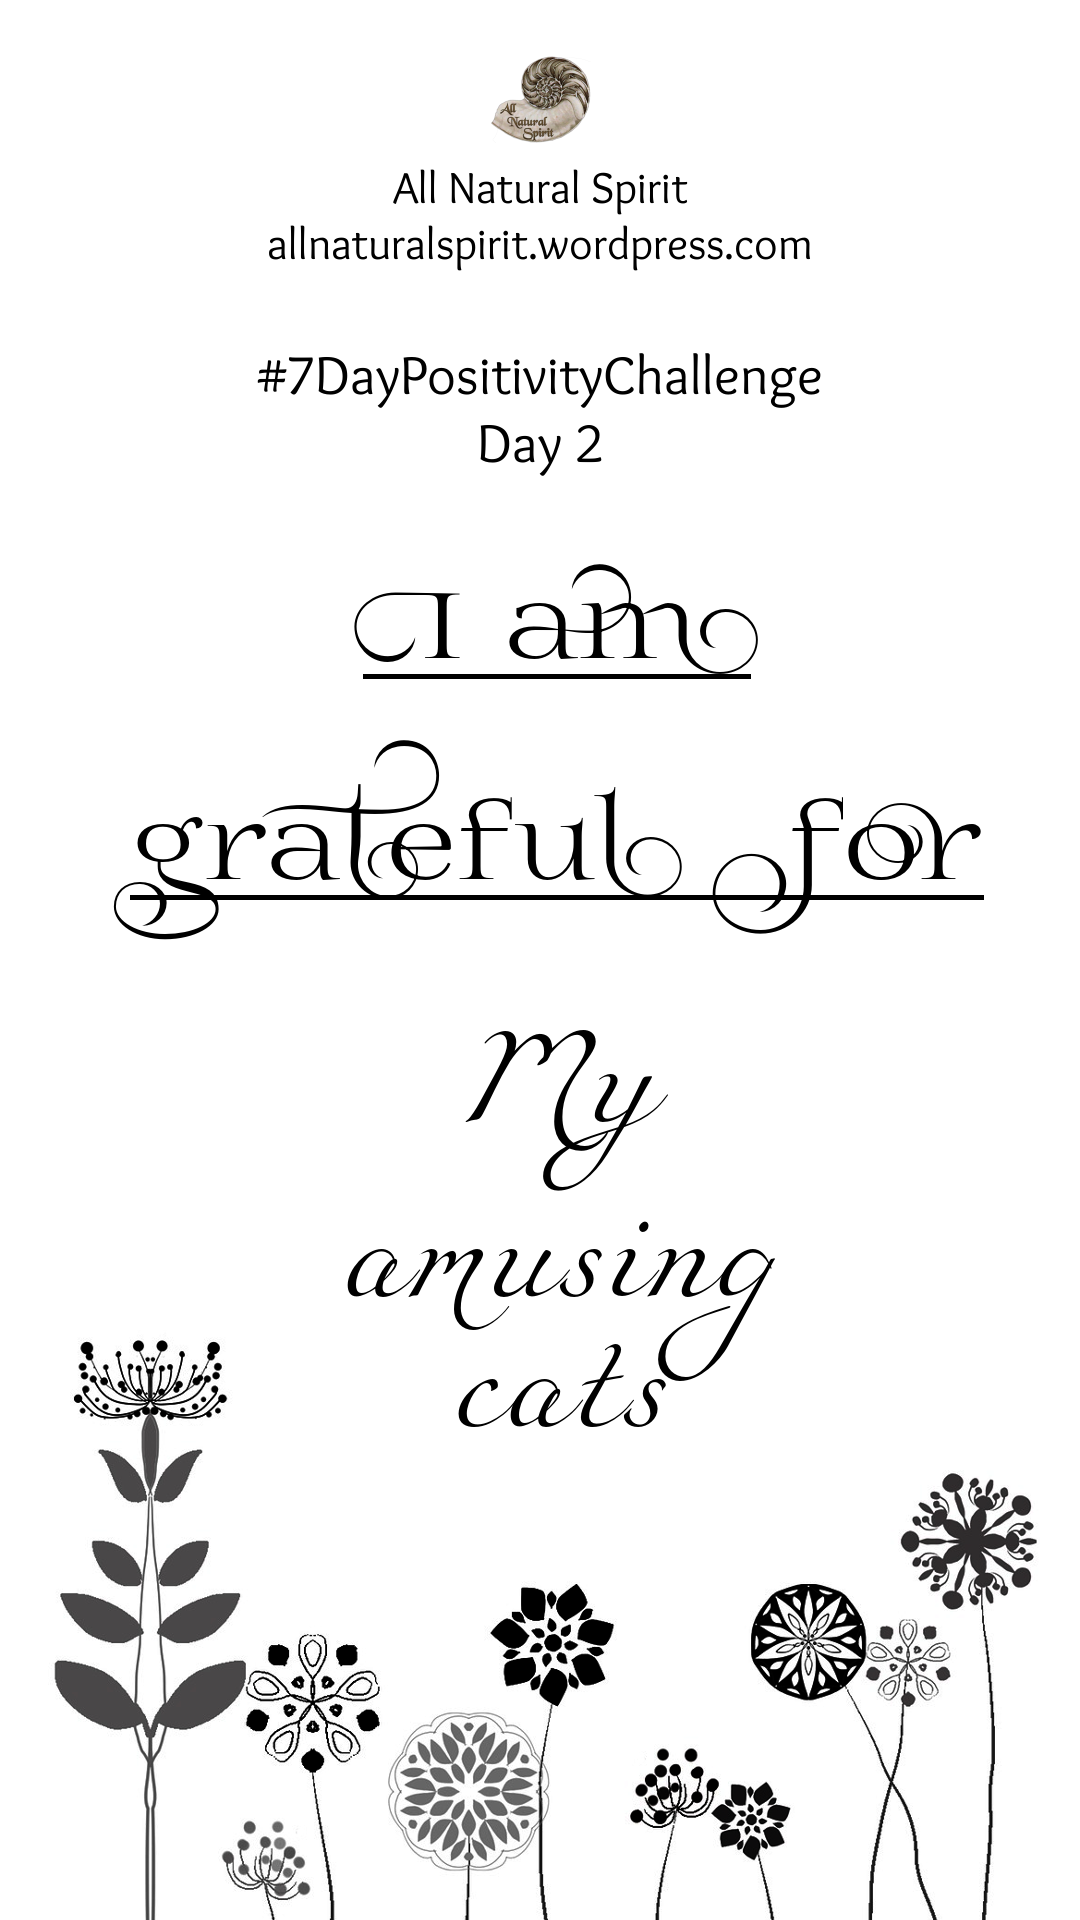 All Natural Spirit, 7 Day Positivity Challenge, Grateful, Gratefulness, Day 2, allnaturalspirit.wordpress.com, mindfulness, typography, flowers, cats